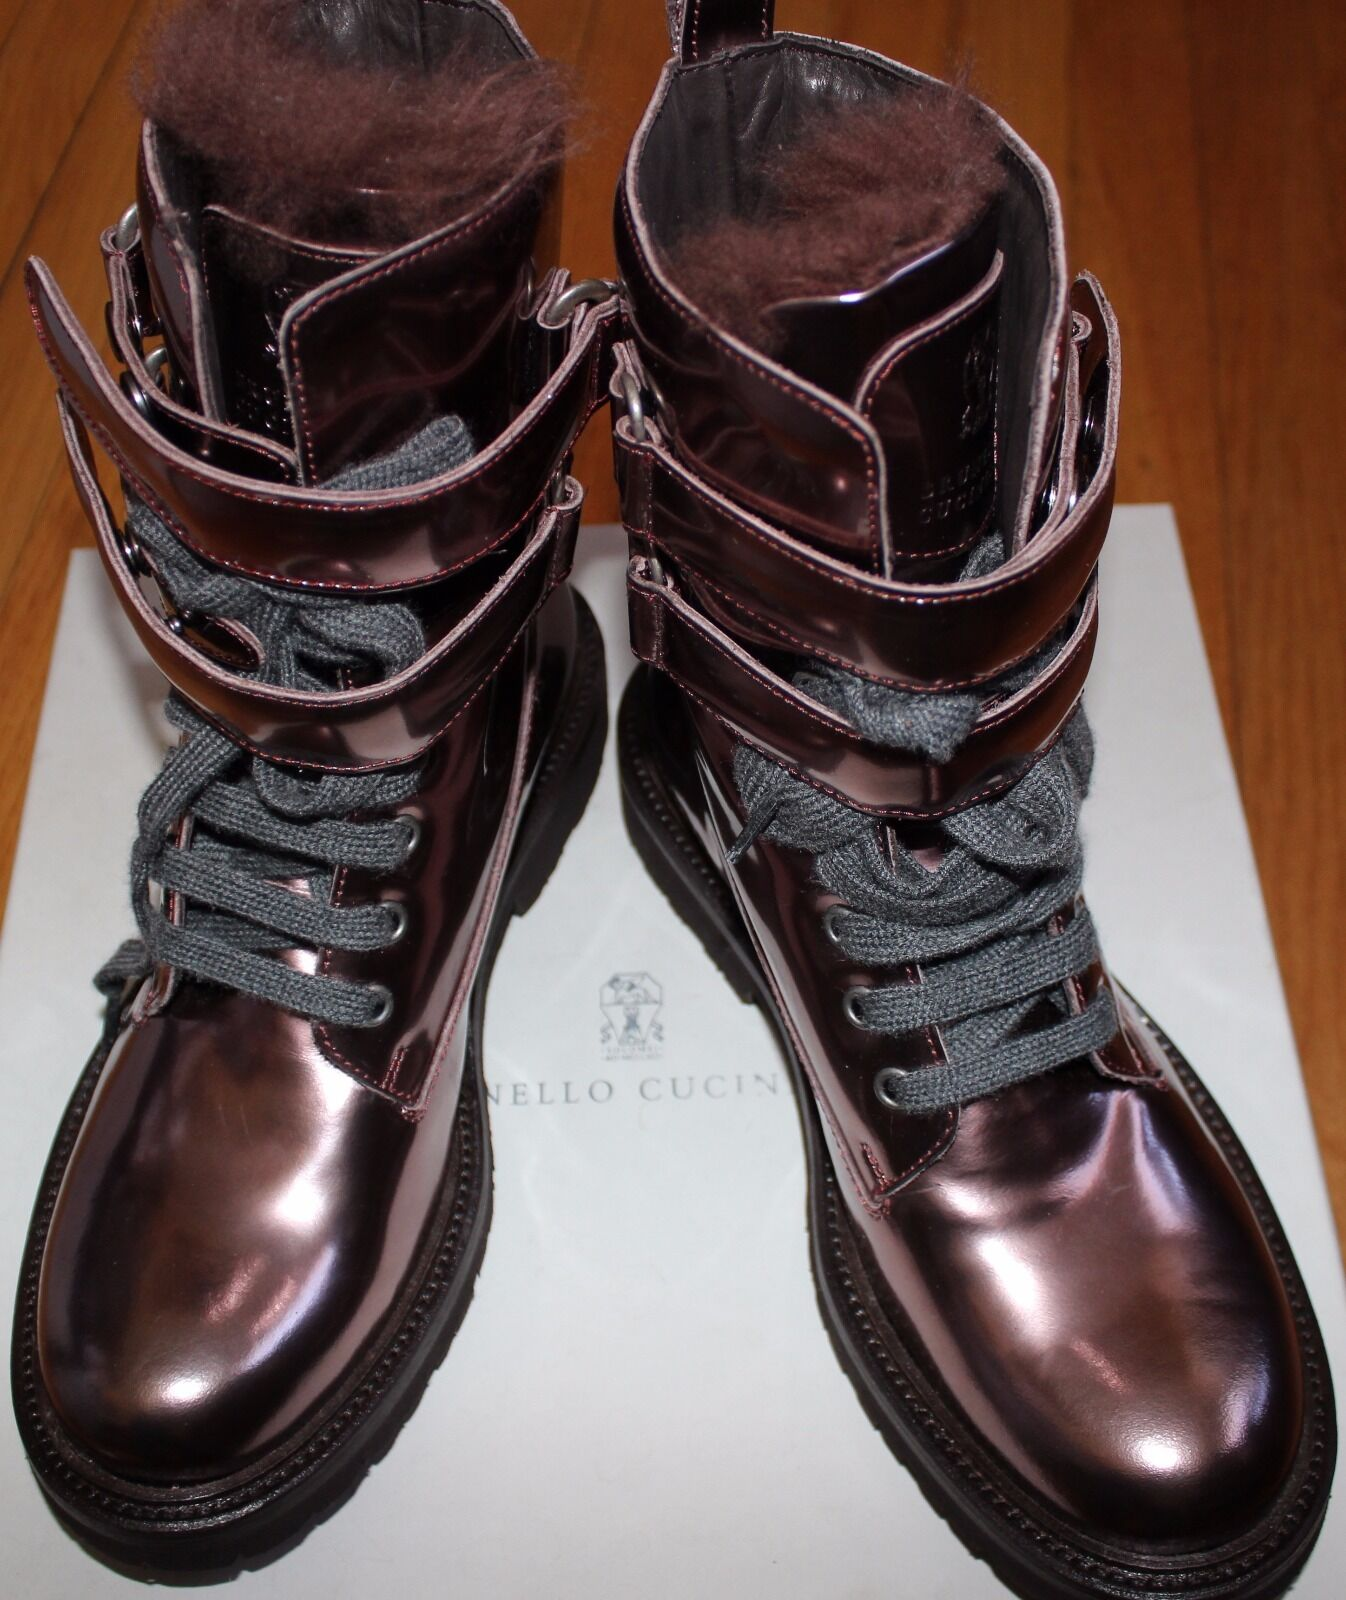 AUTHENTIC SZ  1630 BRUNELLO CUCINELLI METALLIC COPPER Stiefel SZ AUTHENTIC 37 EU/ 7 US 0d69f7